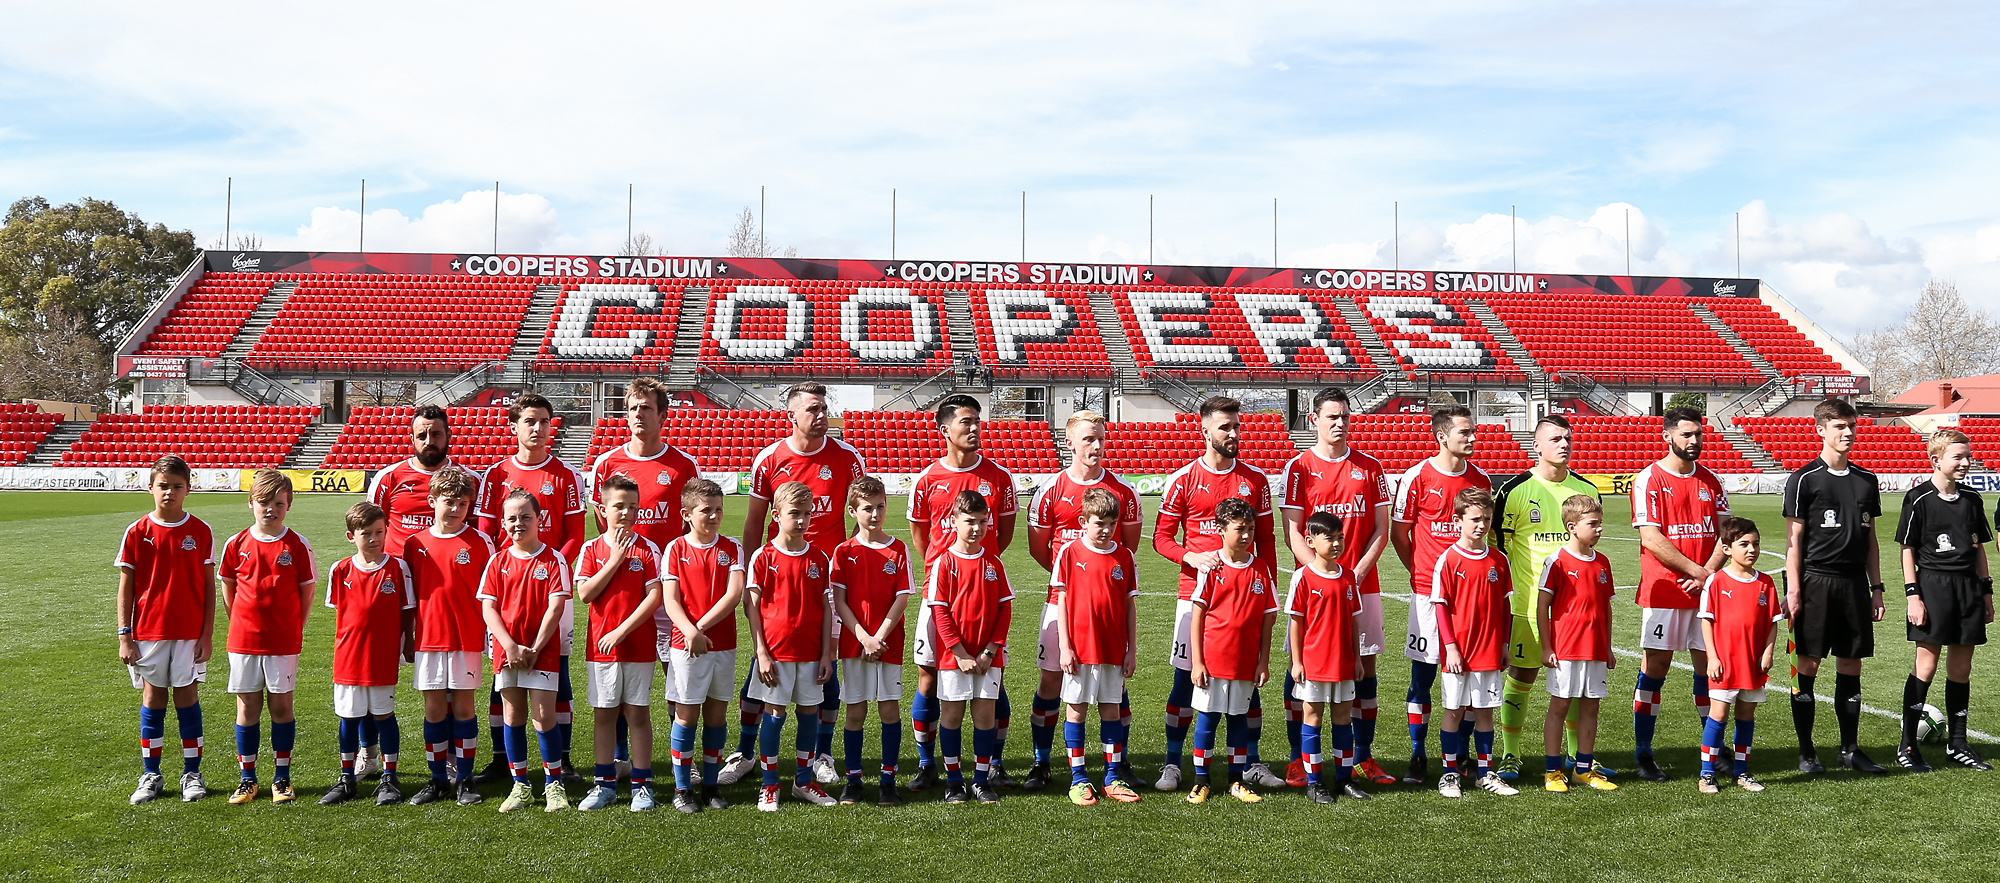 Adelaide Croatia Juniors with the Seniors squad at Coopers Stadium - NPL SA State League 1 Grand Final 2018 - Champions!